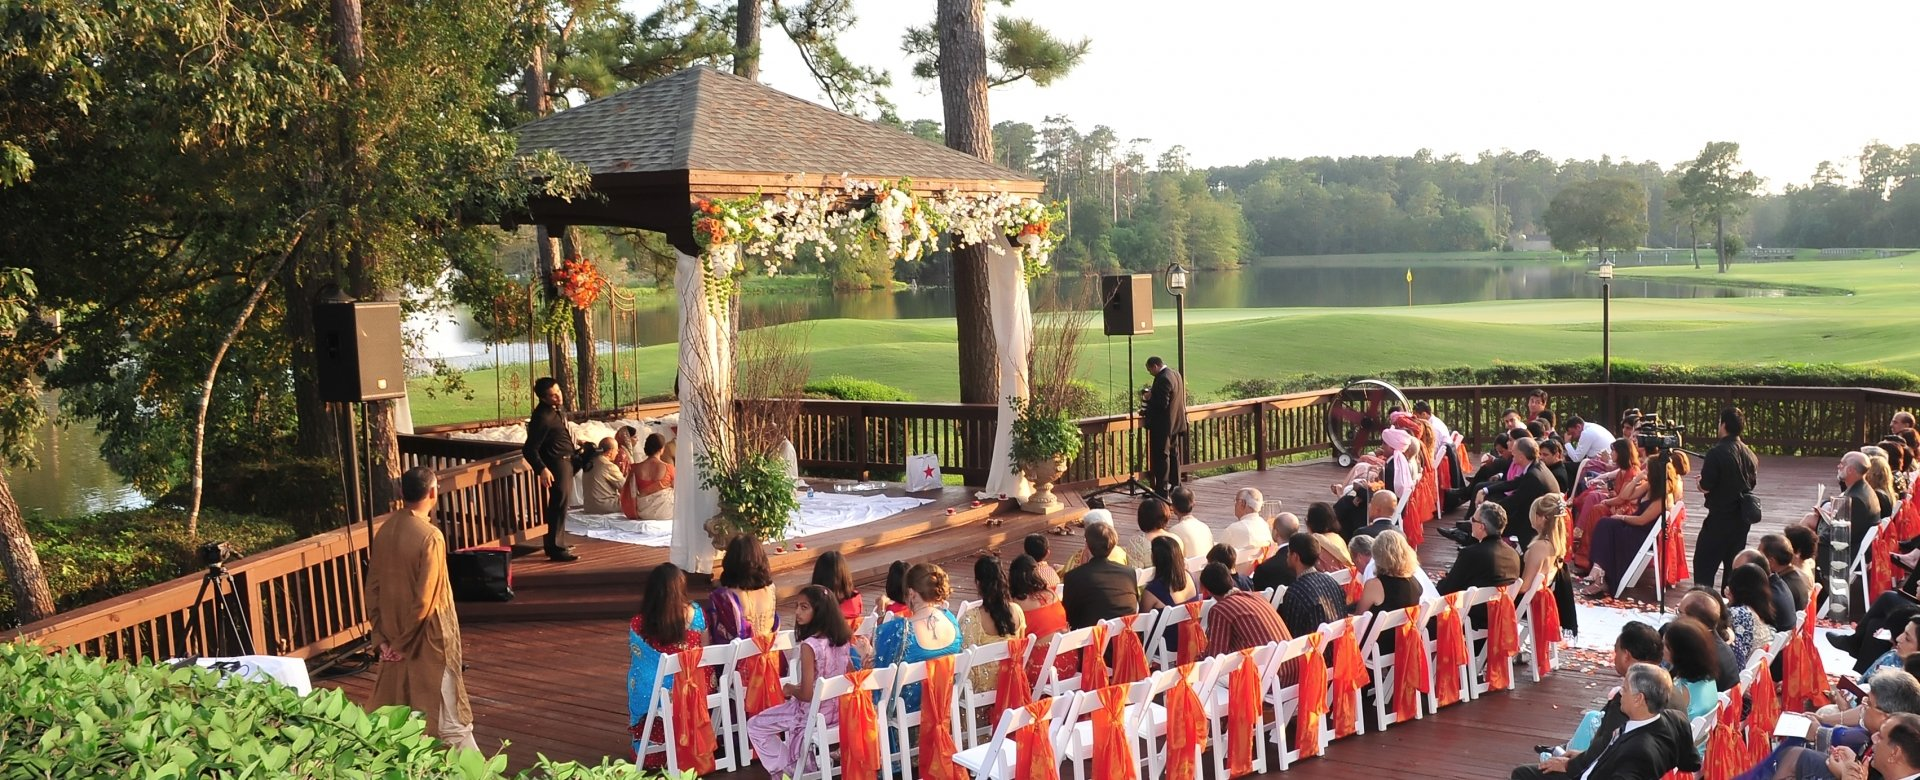 An outdoor wedding ceremony next to a golf course.